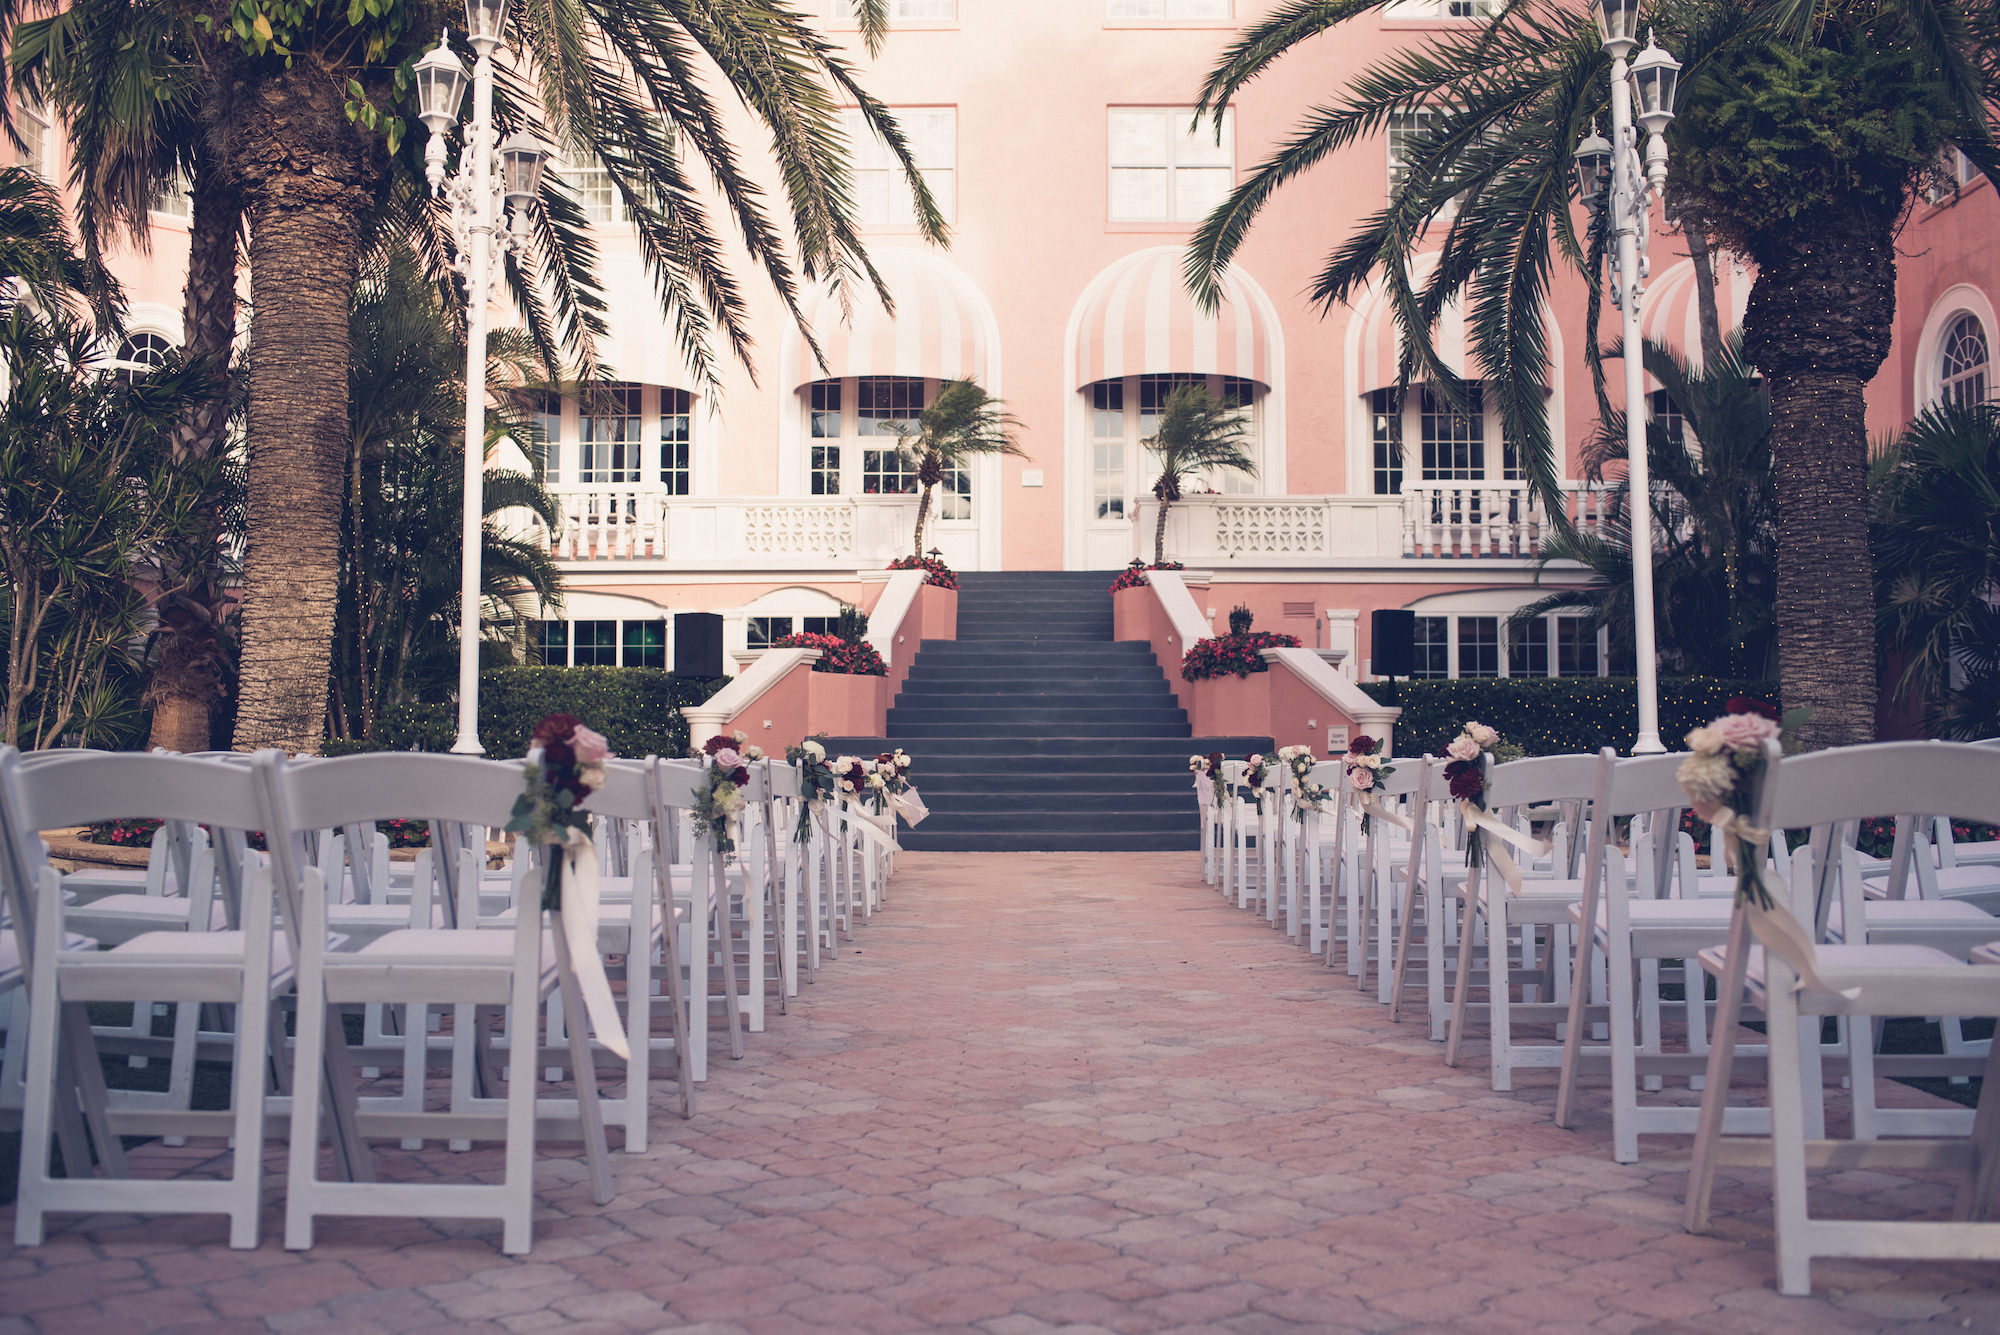 Outdoor Hotel Courtyard Wedding Ceremony Portrait | Historic Waterfront Hotel St. Pete Beach Wedding Venue The Don CeSar | Wedding Photographer Luxe Light Images